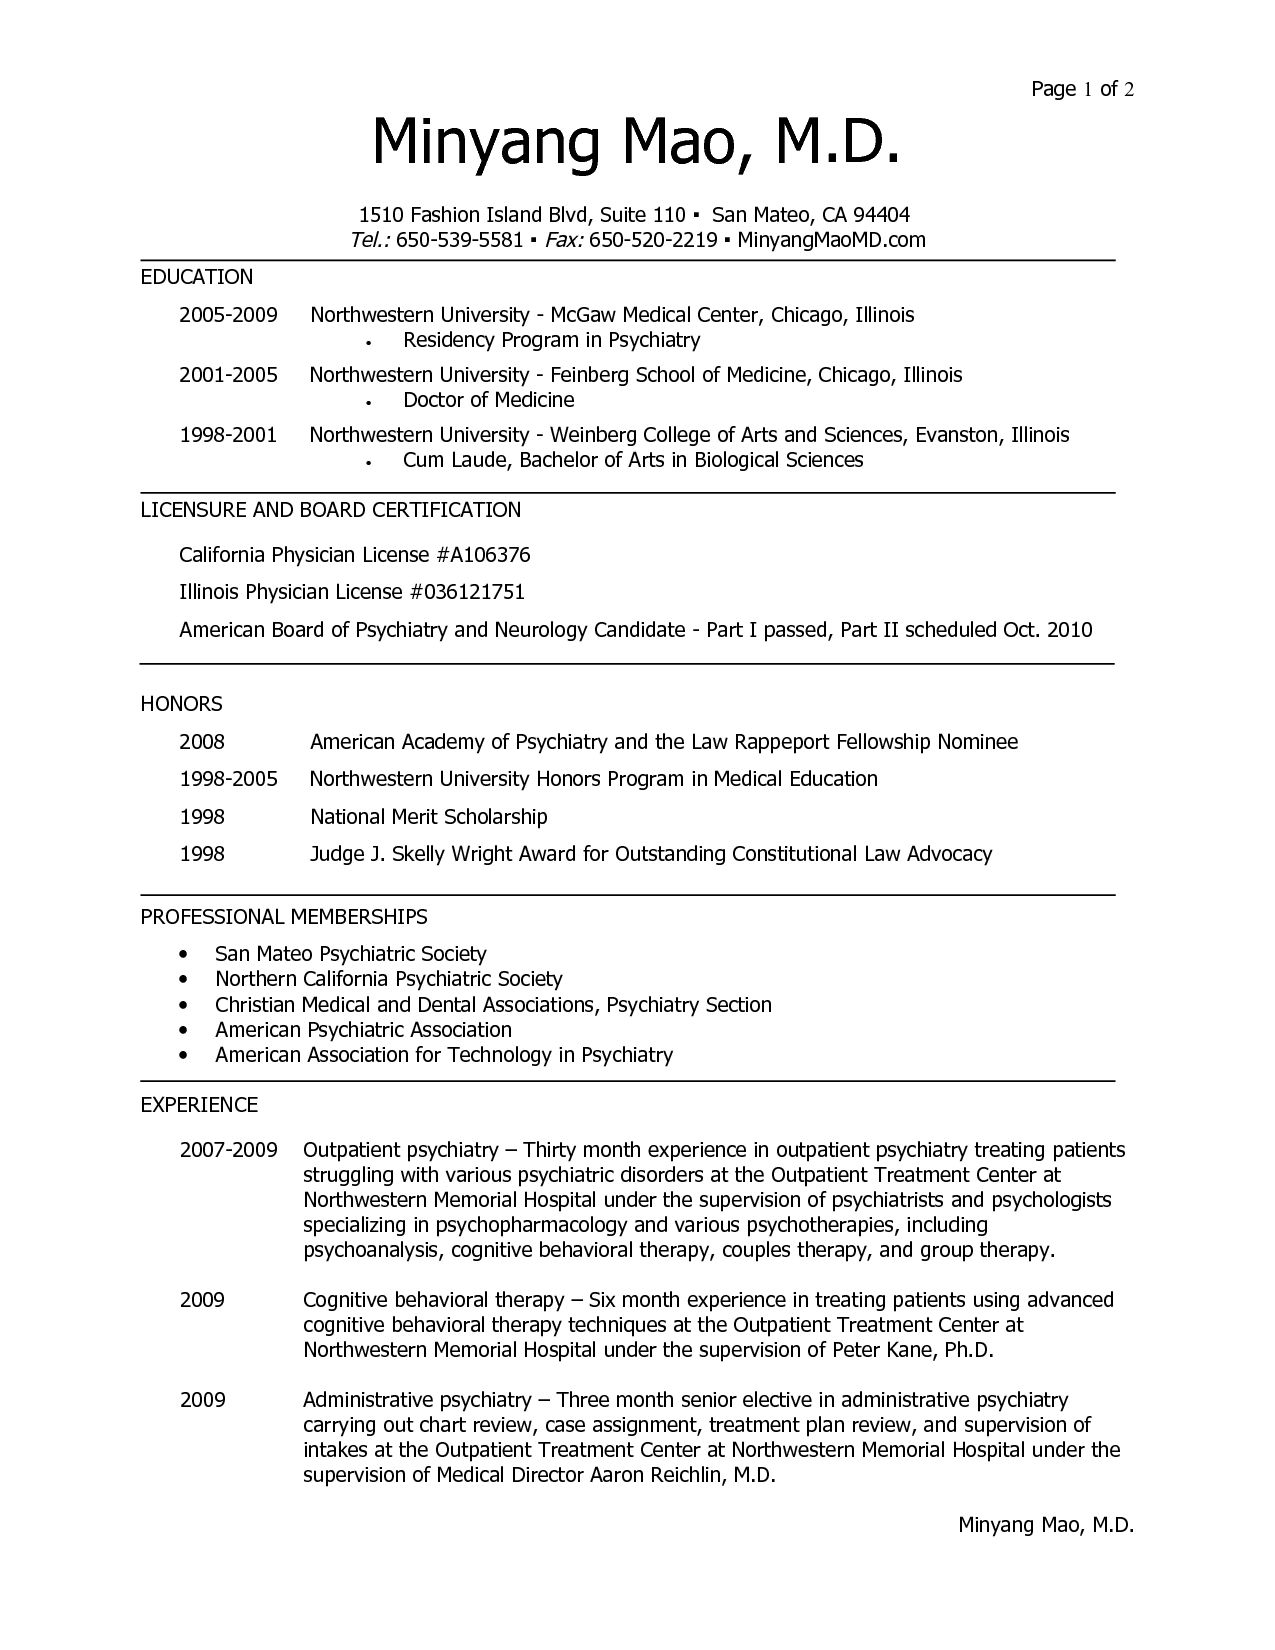 Resume Examples Healthcare Medical School Resume Template Medical School Resume